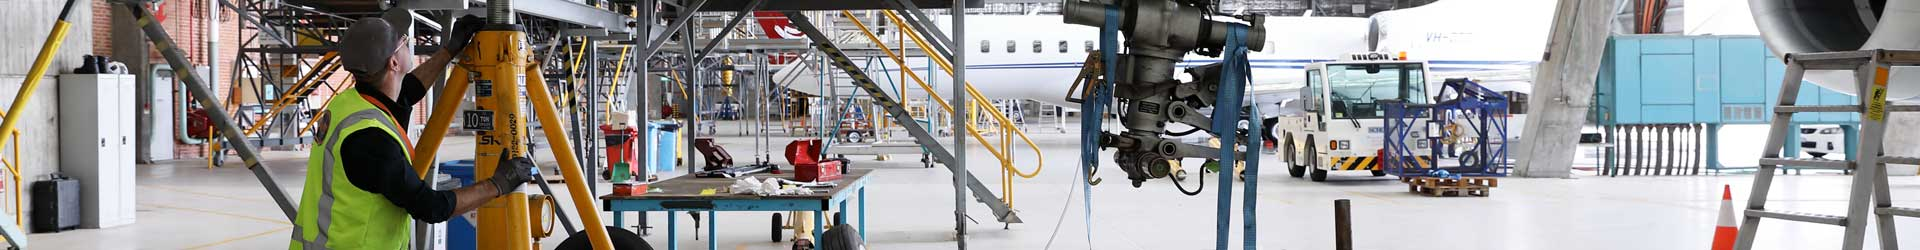 Aviation engineer assisting with aircraft maintenance in a hangar